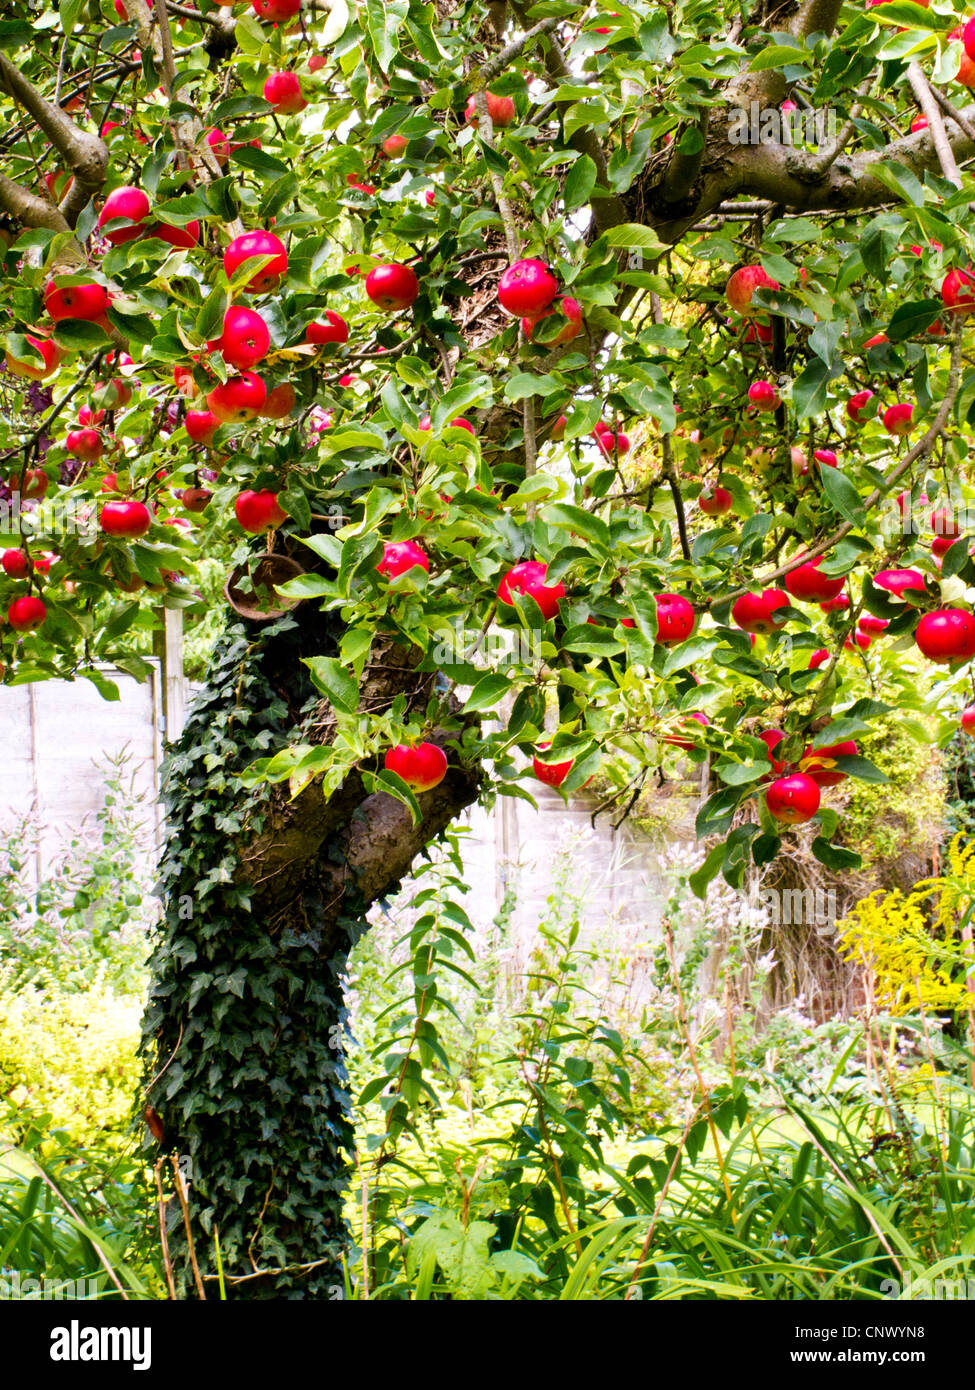 A tree laden with juicy red apples in an English country garden in summer, UK - Stock Image